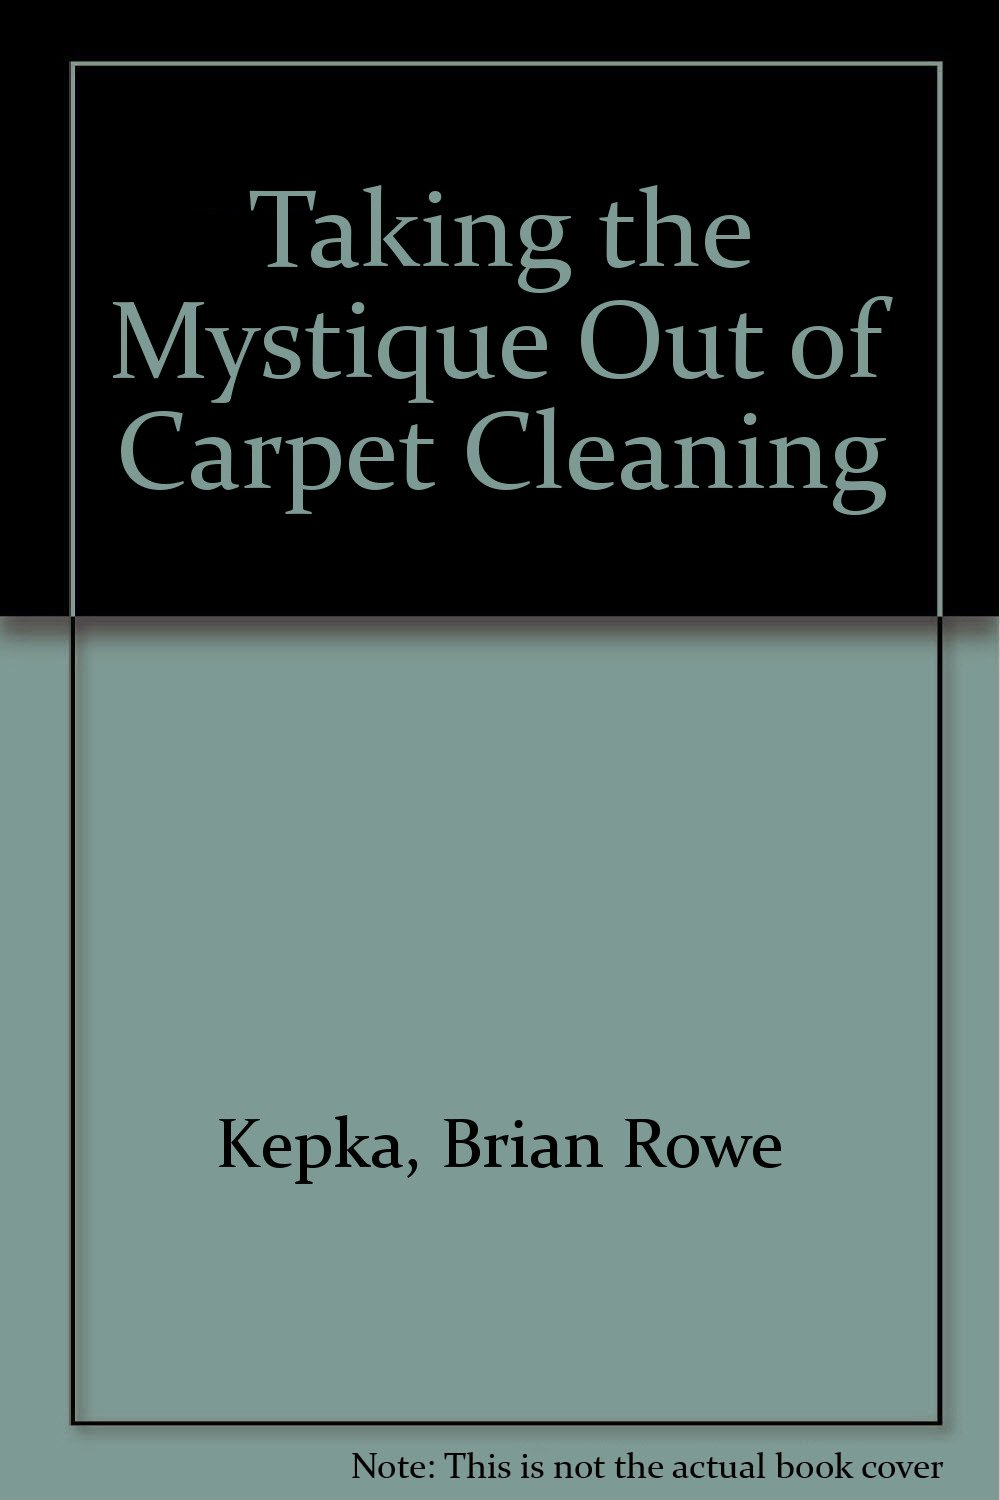 Taking the Mystique Out of Carpet Cleaning